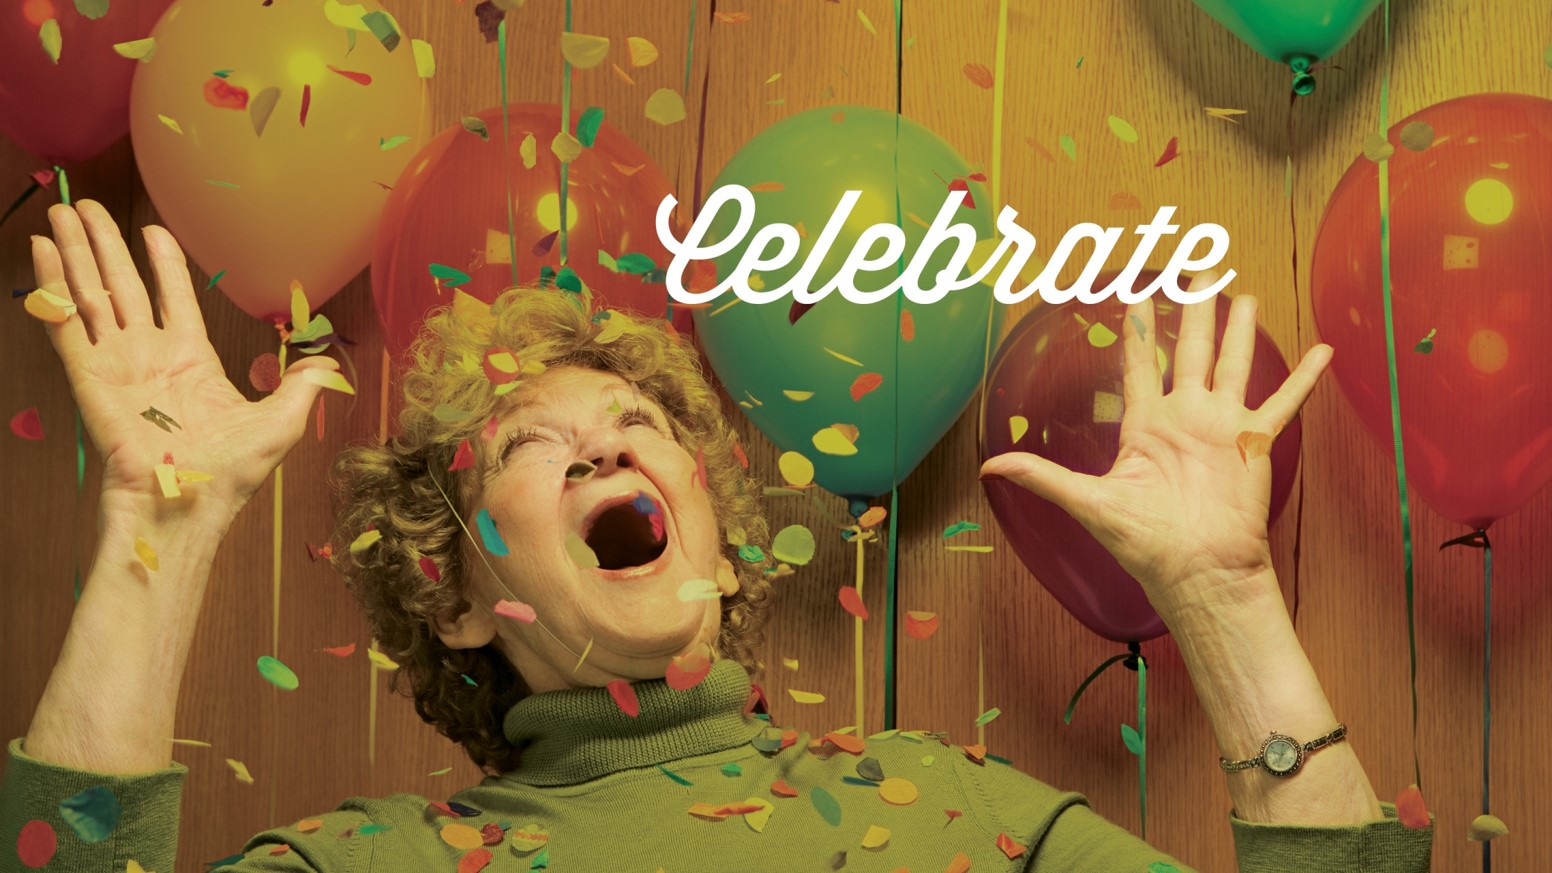 - Celebrate success loudly…but not our own! We genuinely find joy in the success of our clients, our colleagues, and others. Don't cheat yourself or others by withholding honest praise and encouragement.